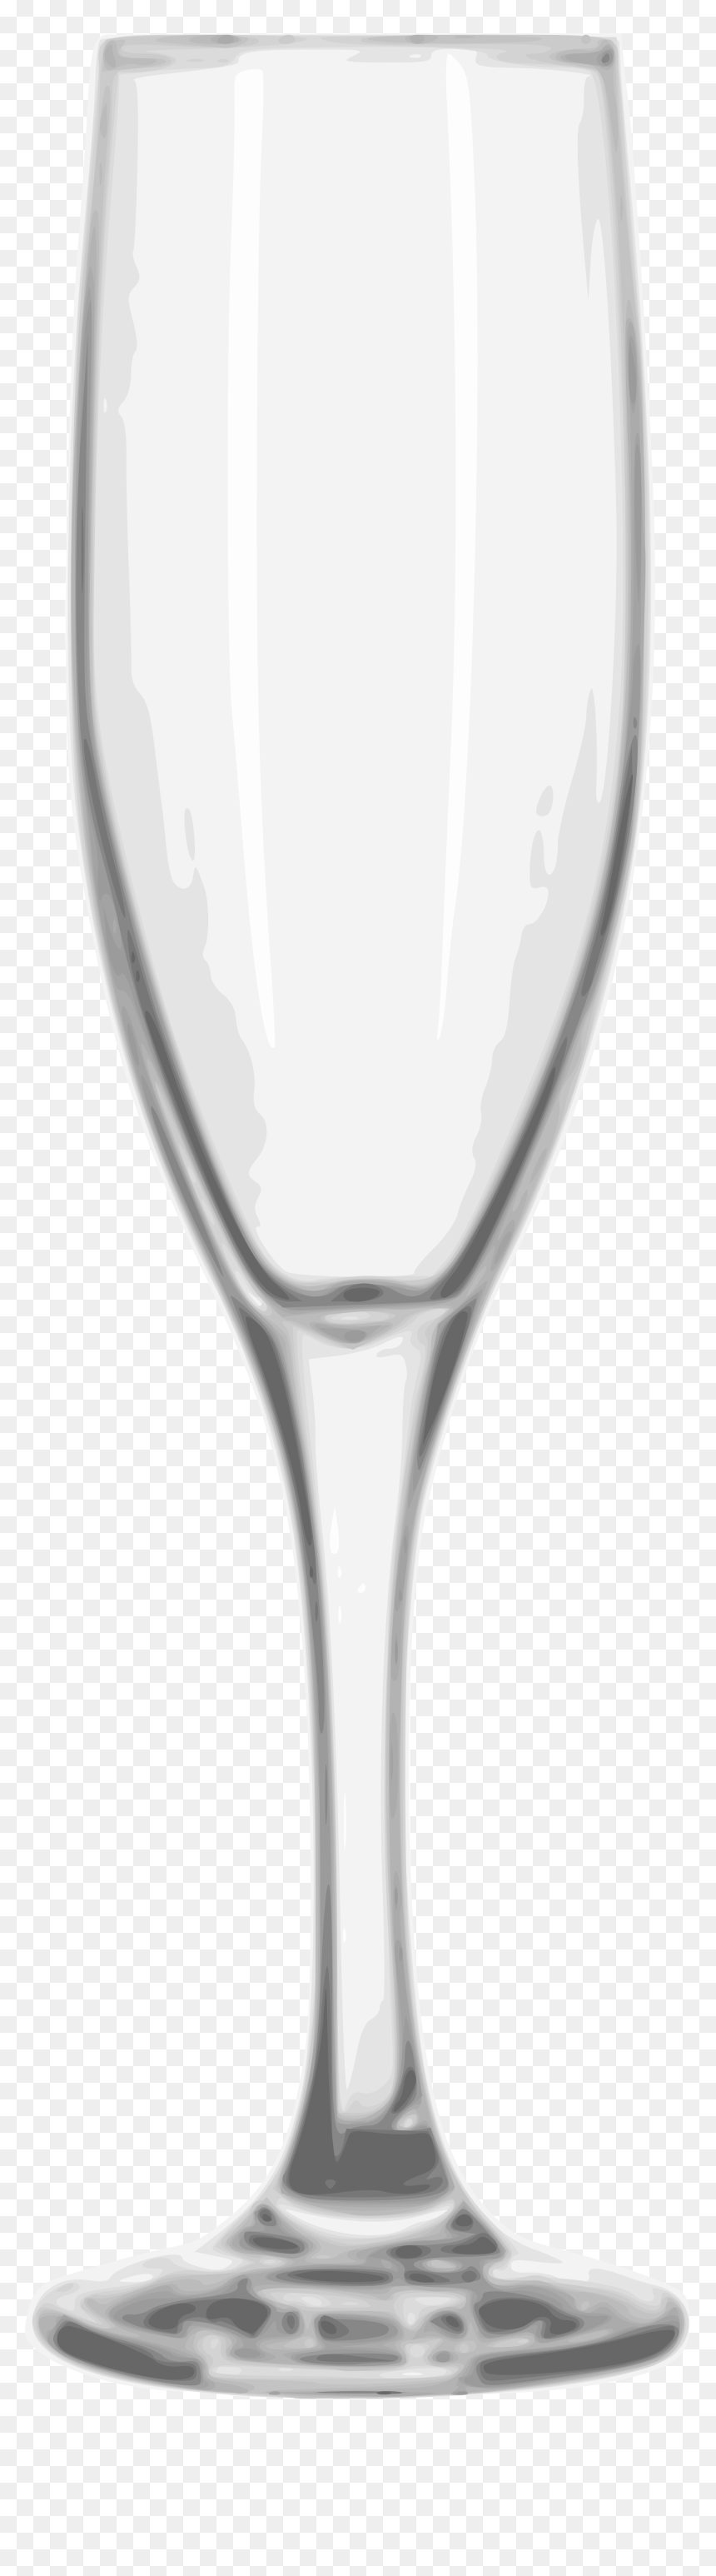 Transparent Champagne Glass Clipart Black And White - Champagne Flute Glass Png, Png Download